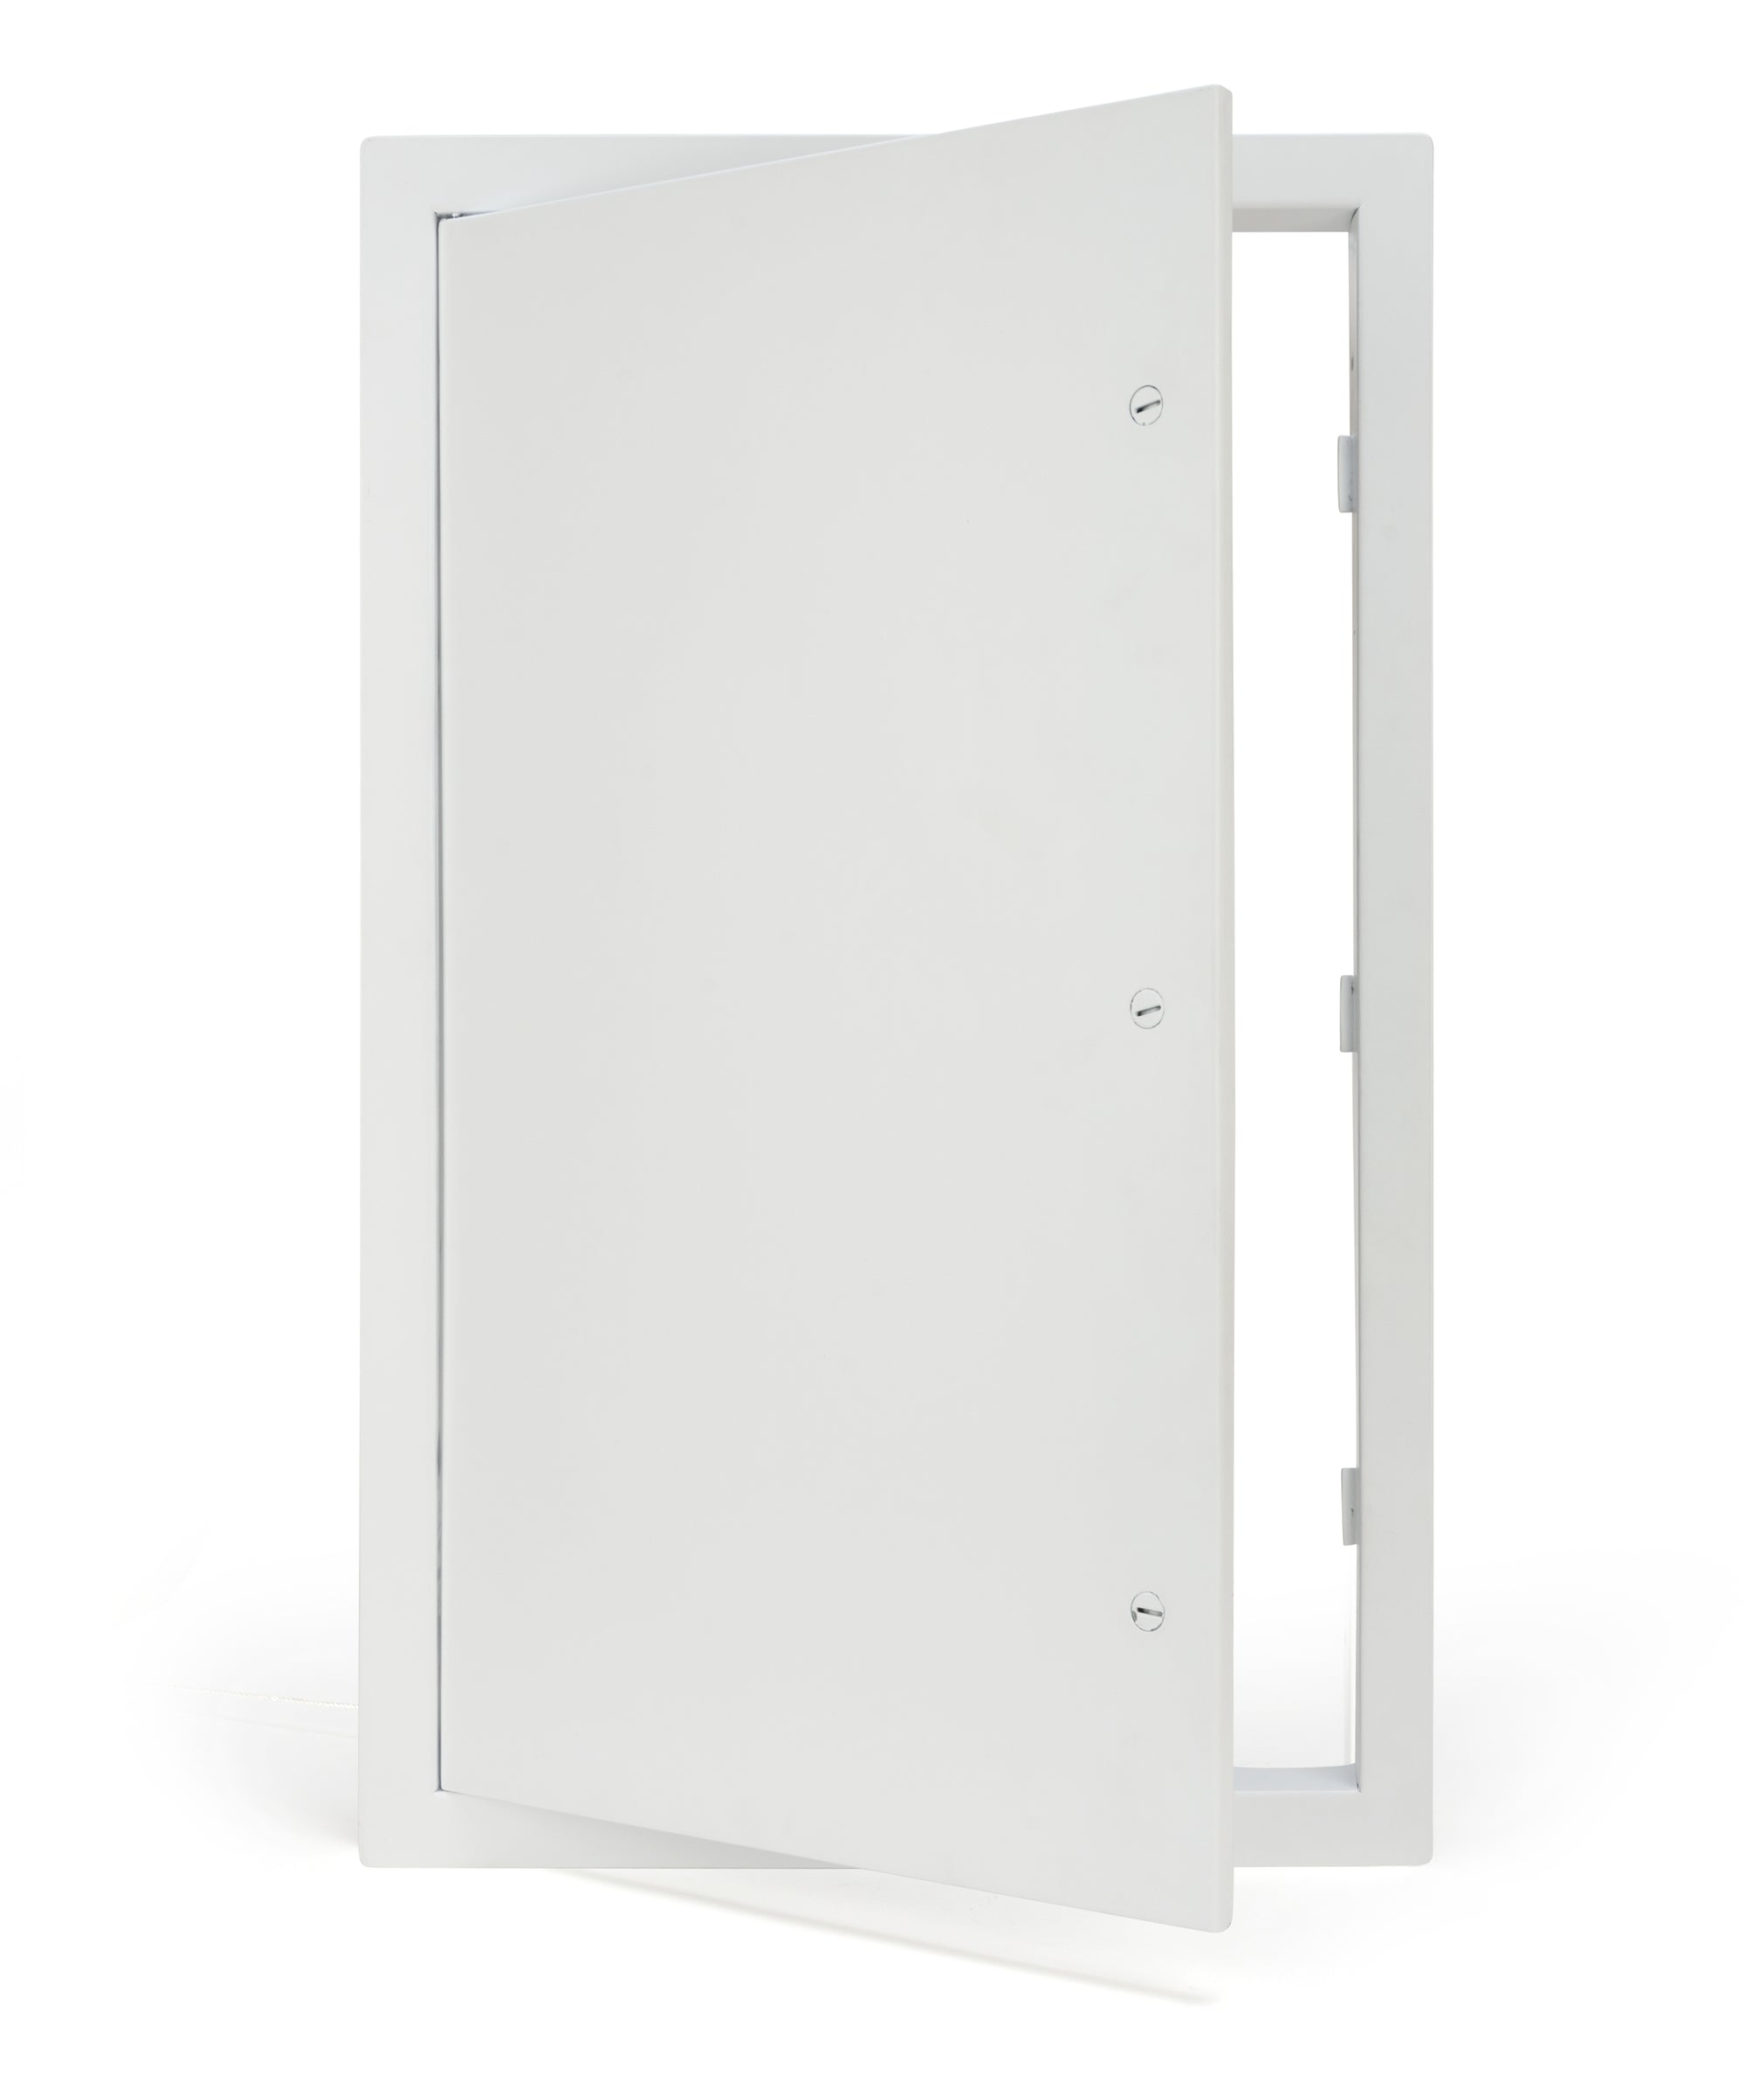 SENJU Drywall Access Panel